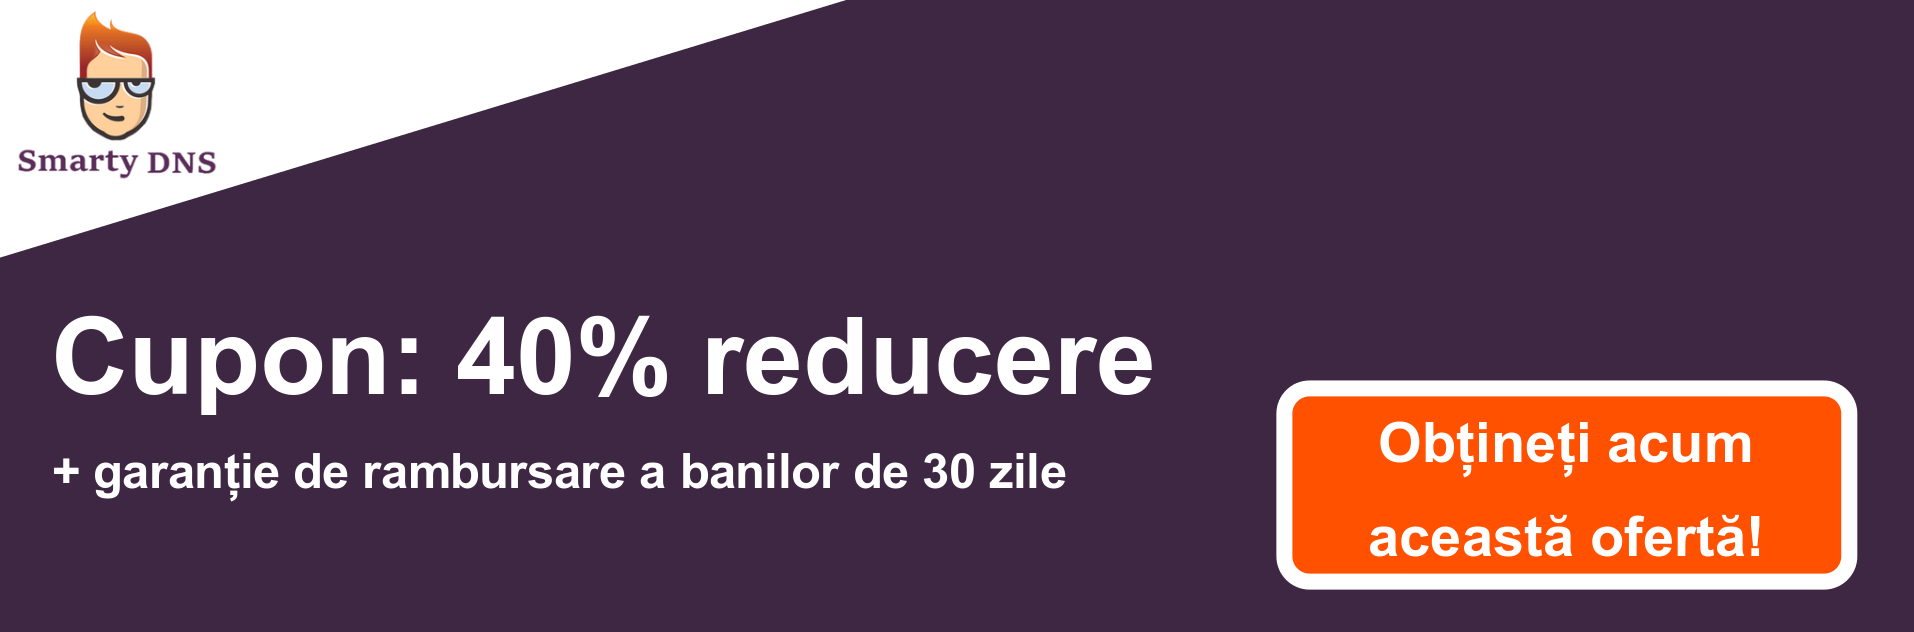 Banner cupon SmartyDNS - 40% reducere